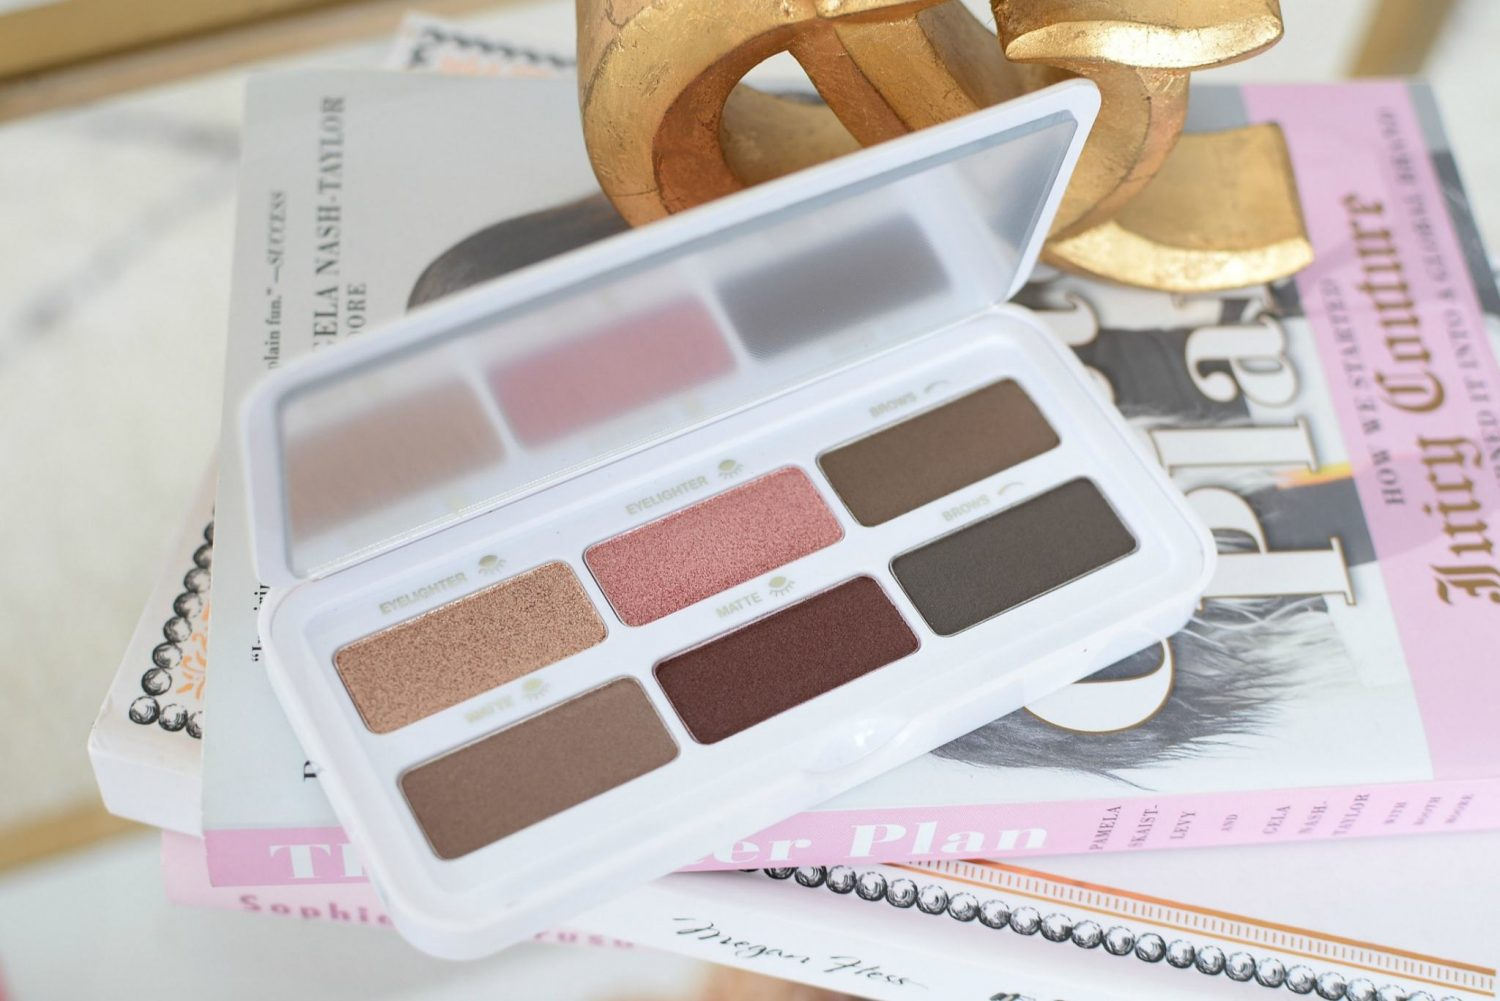 Clarins limited-edition Palette Ready in a Flash